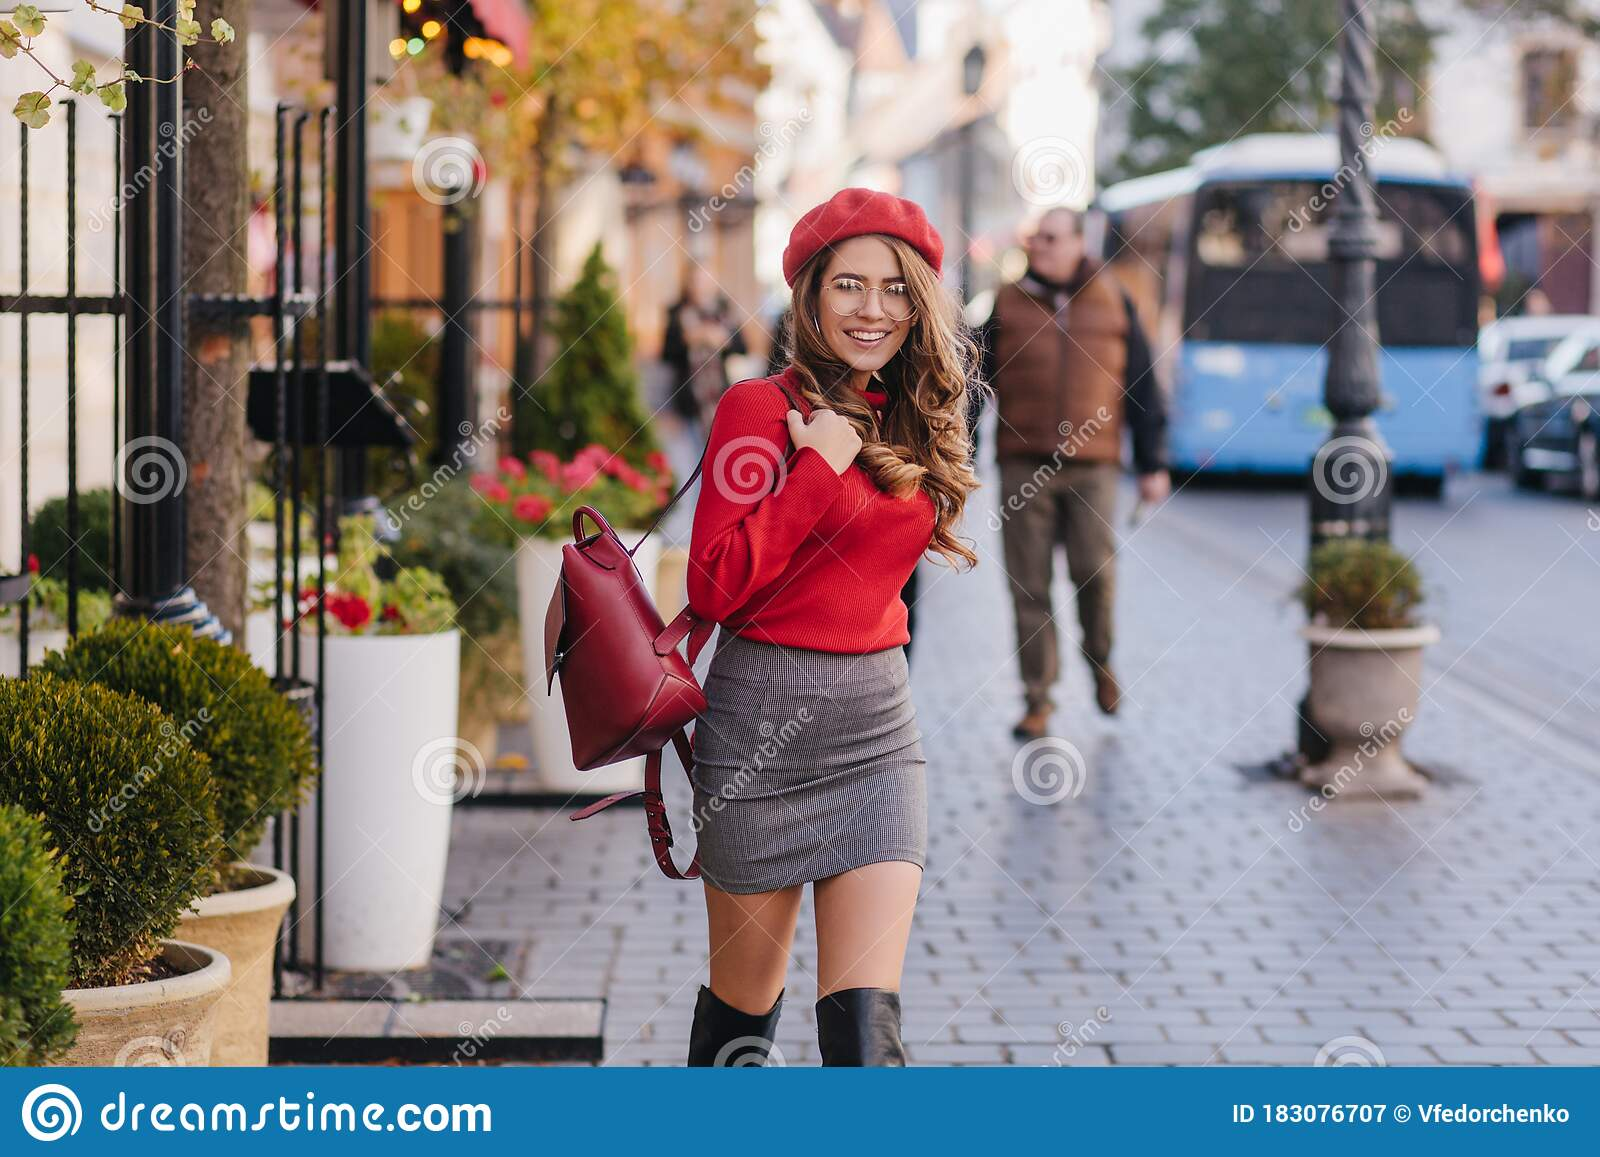 Mini skirts in france 578 Short Skirt Walking Photos Free Royalty Free Stock Photos From Dreamstime